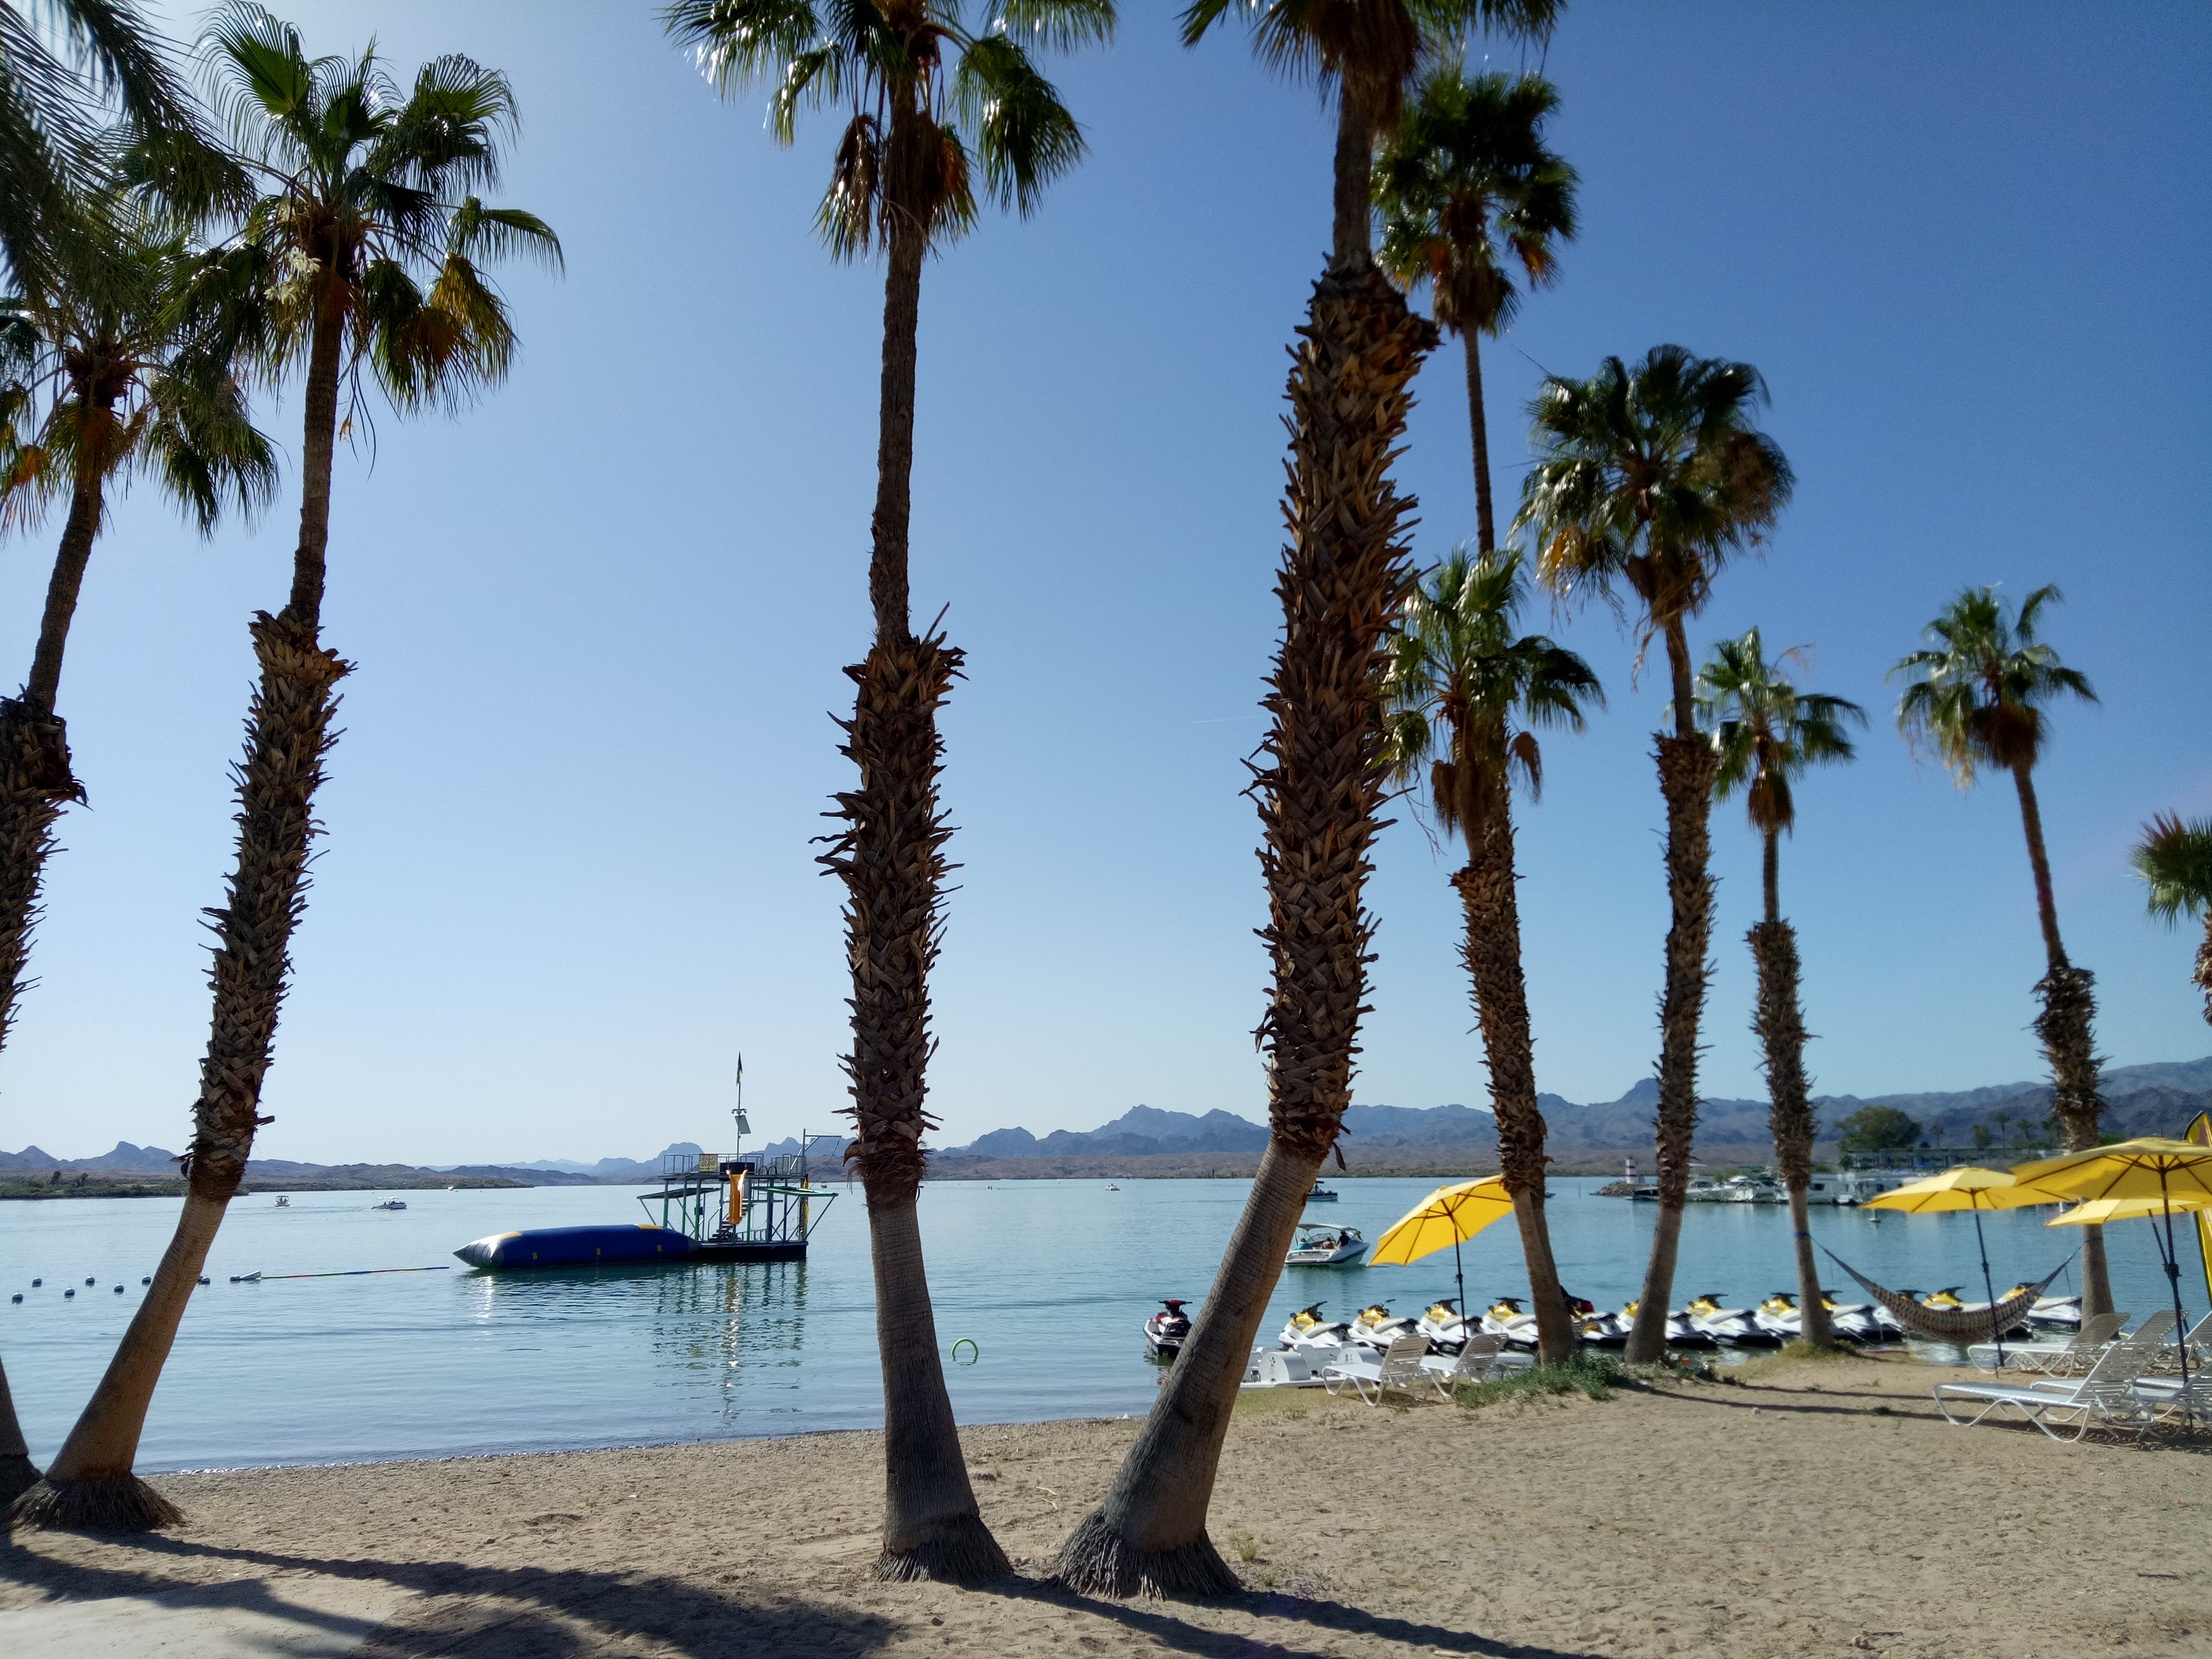 water sports sea travel adventures fun to do vacation ideas lake havasu